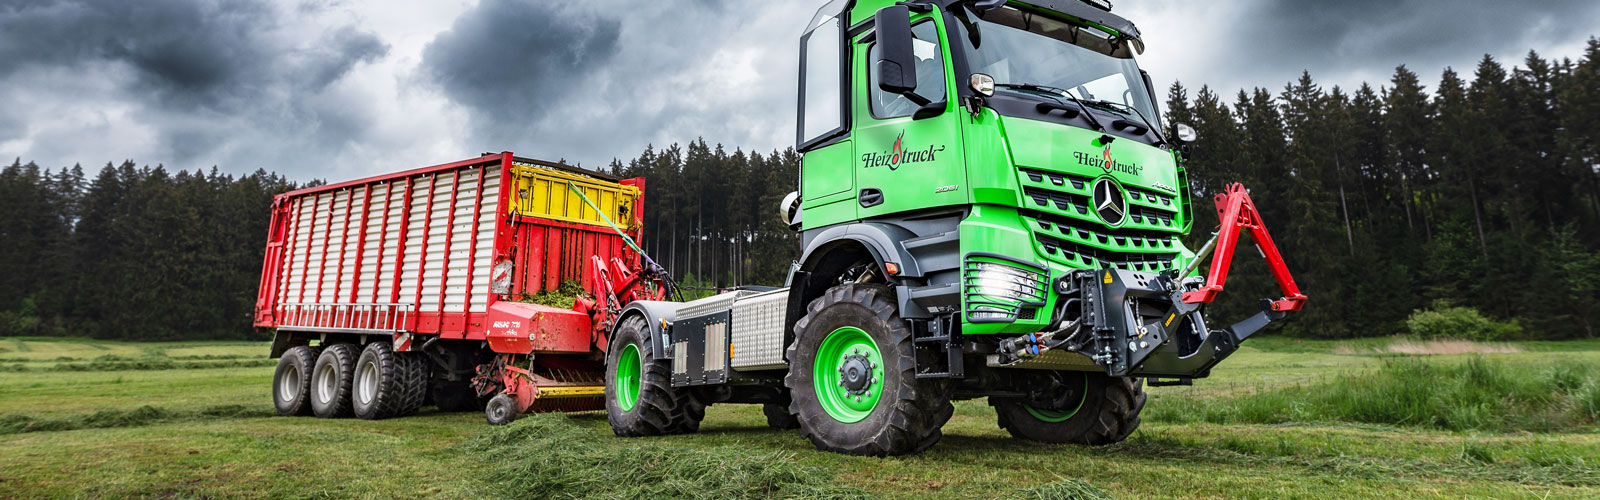 Heizotruck Forestry